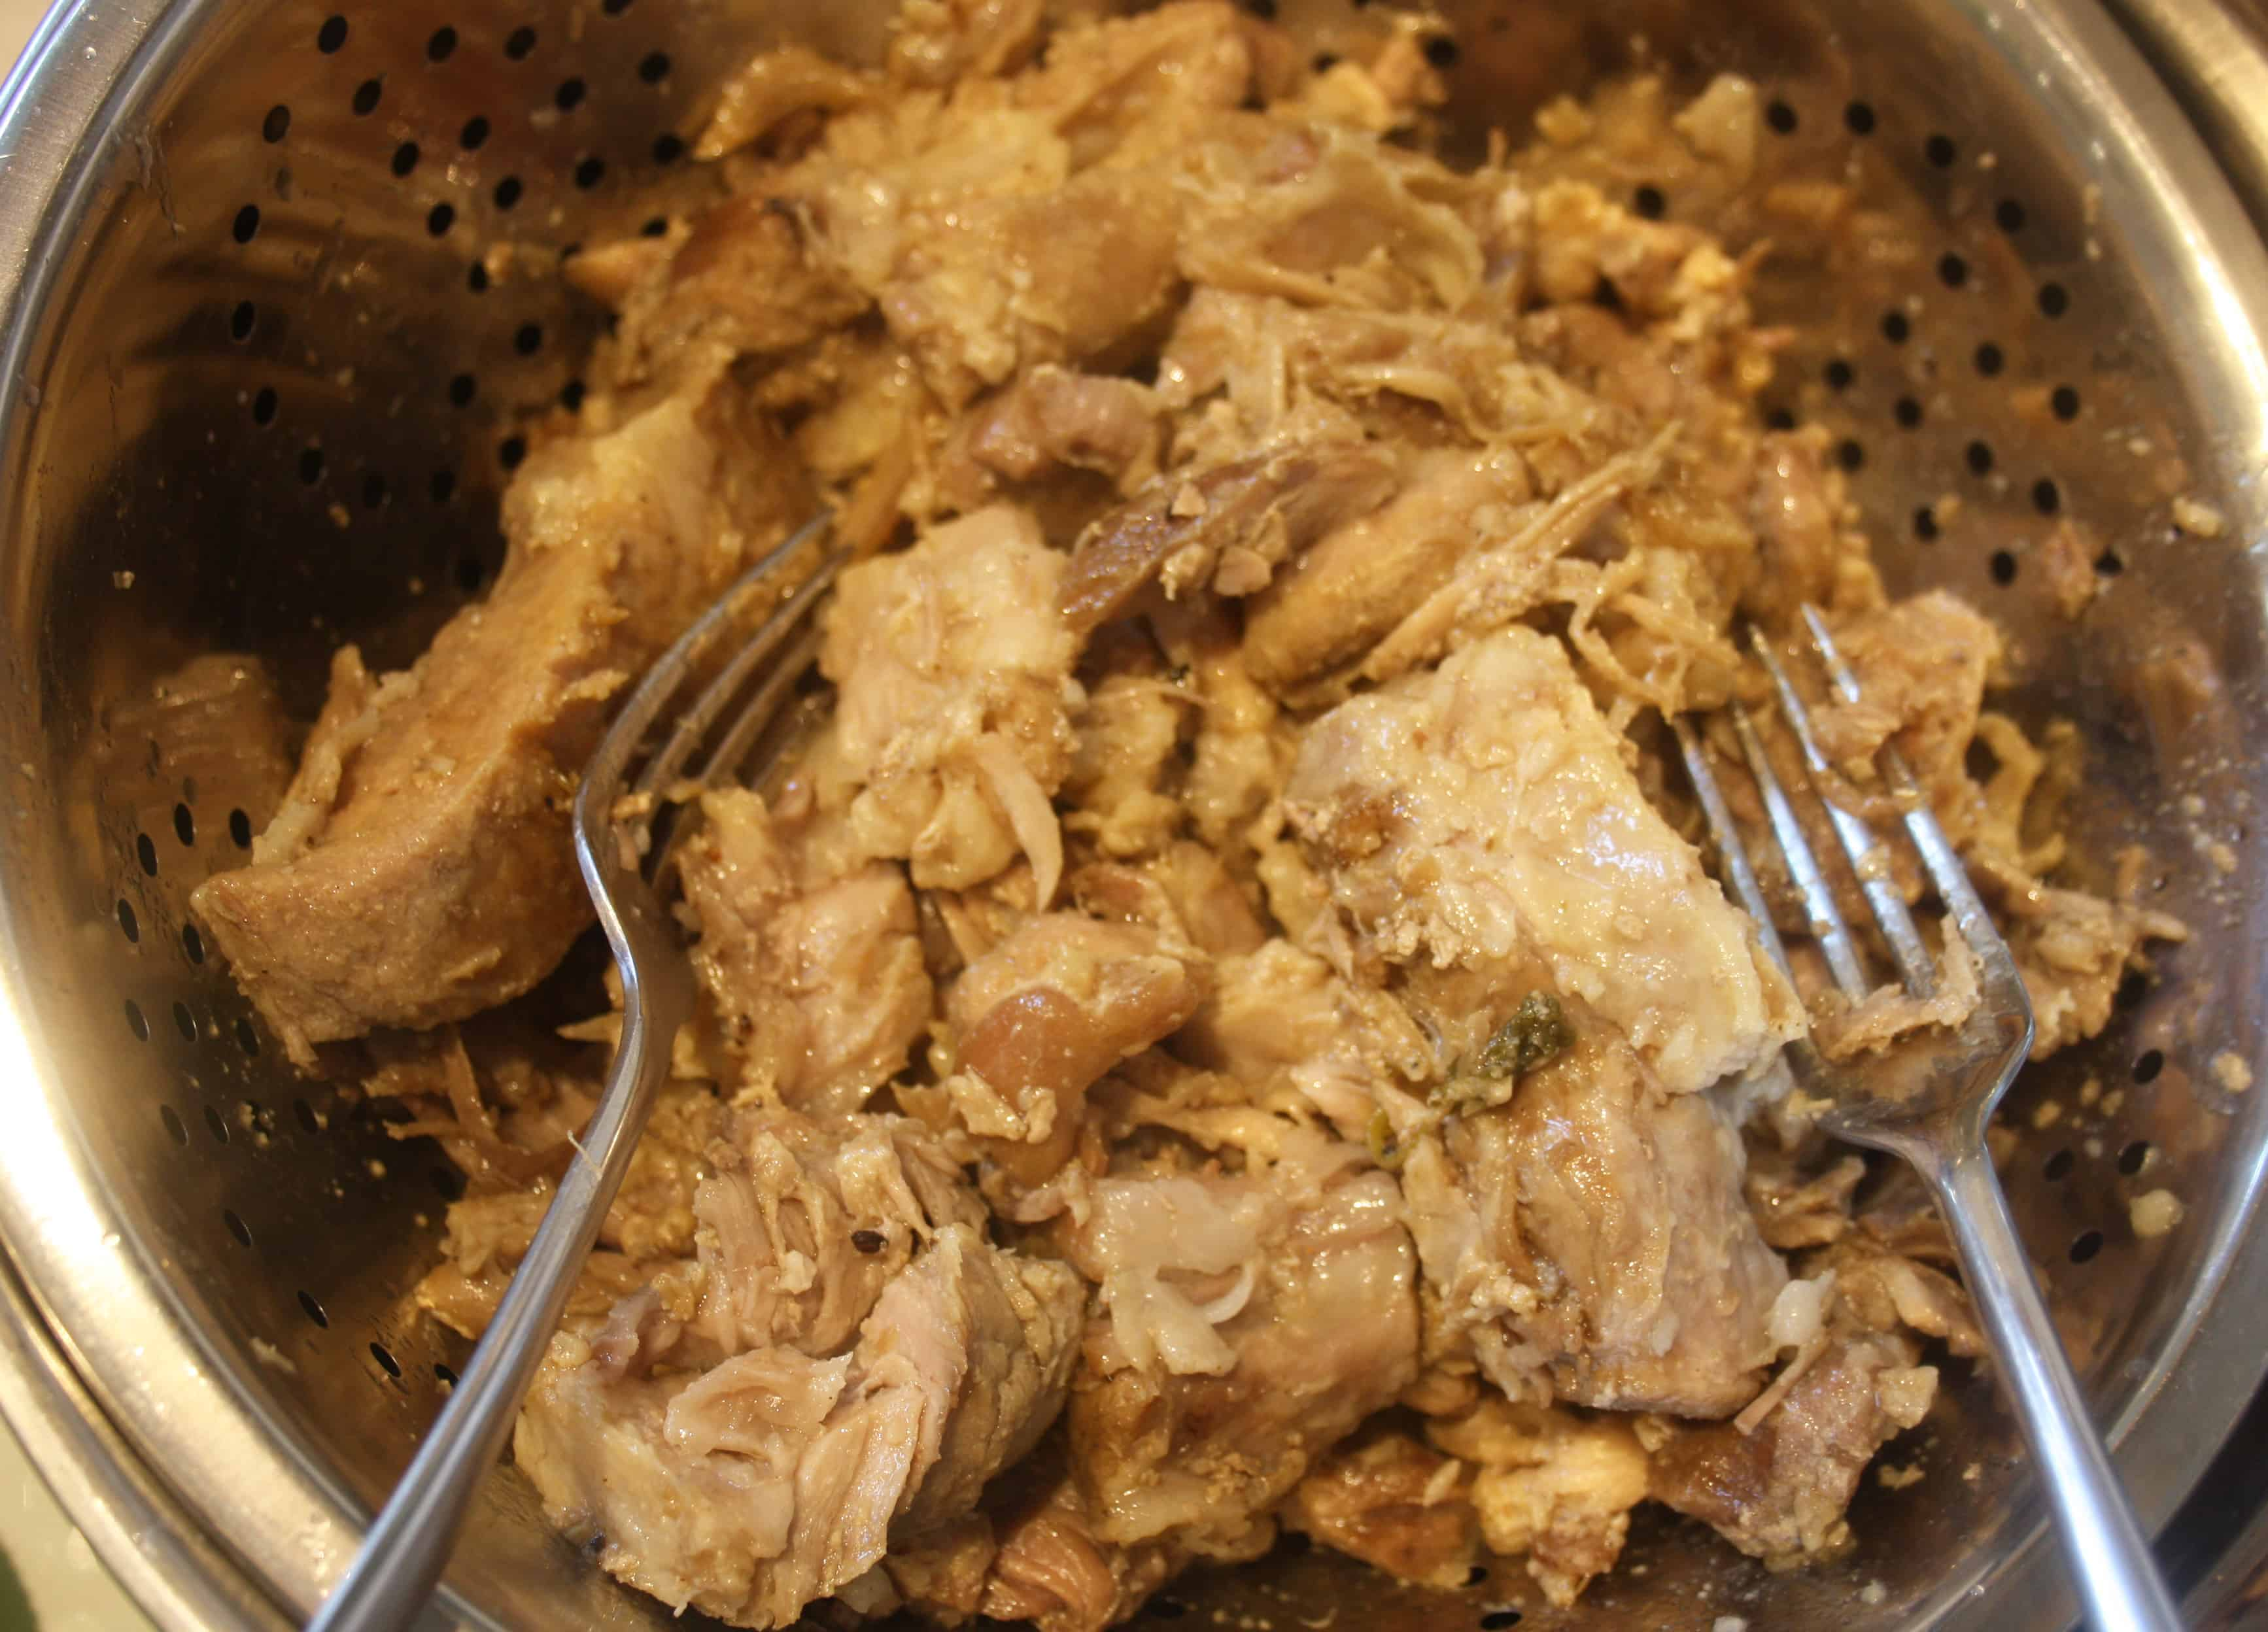 cooked pork draining in a colander.